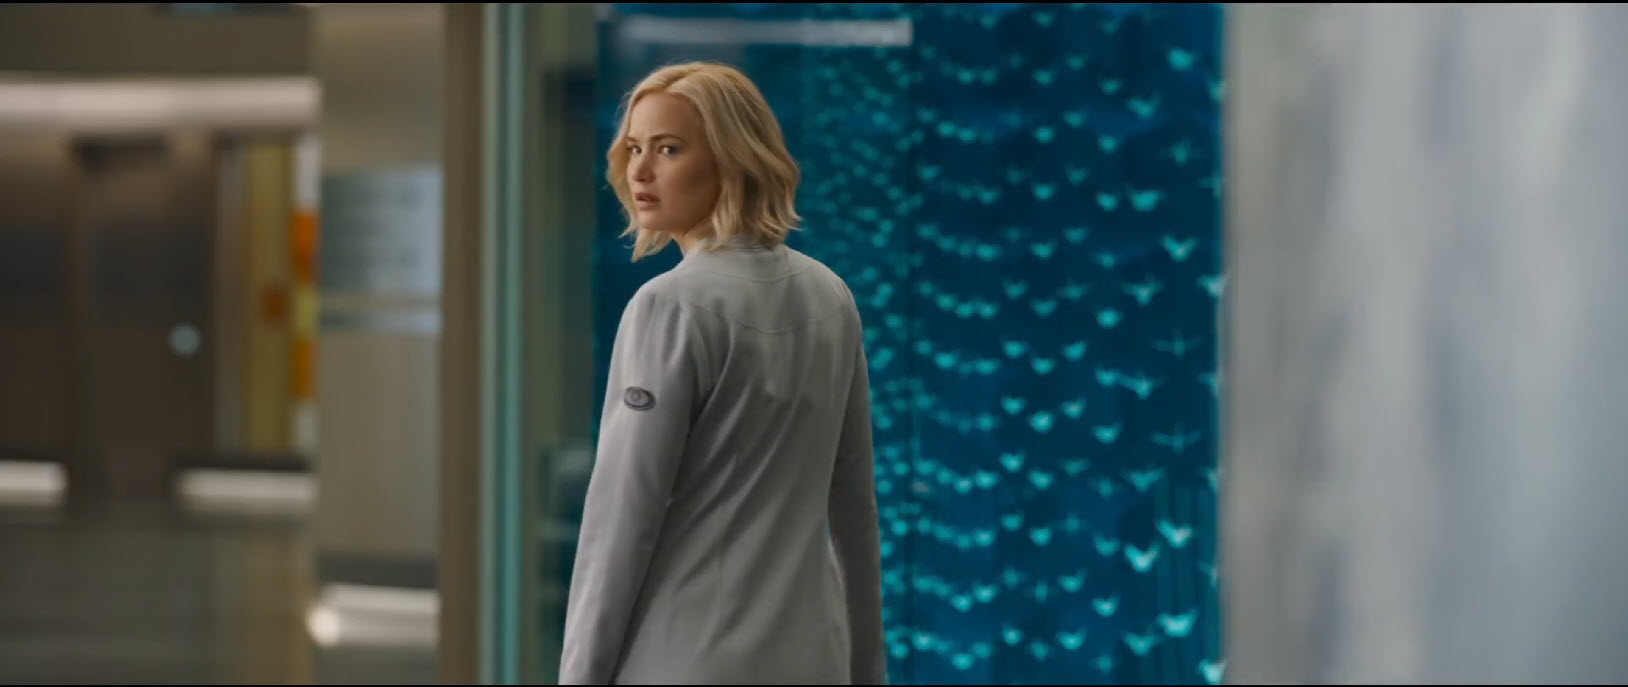 passengers jennifer lawrence looking back